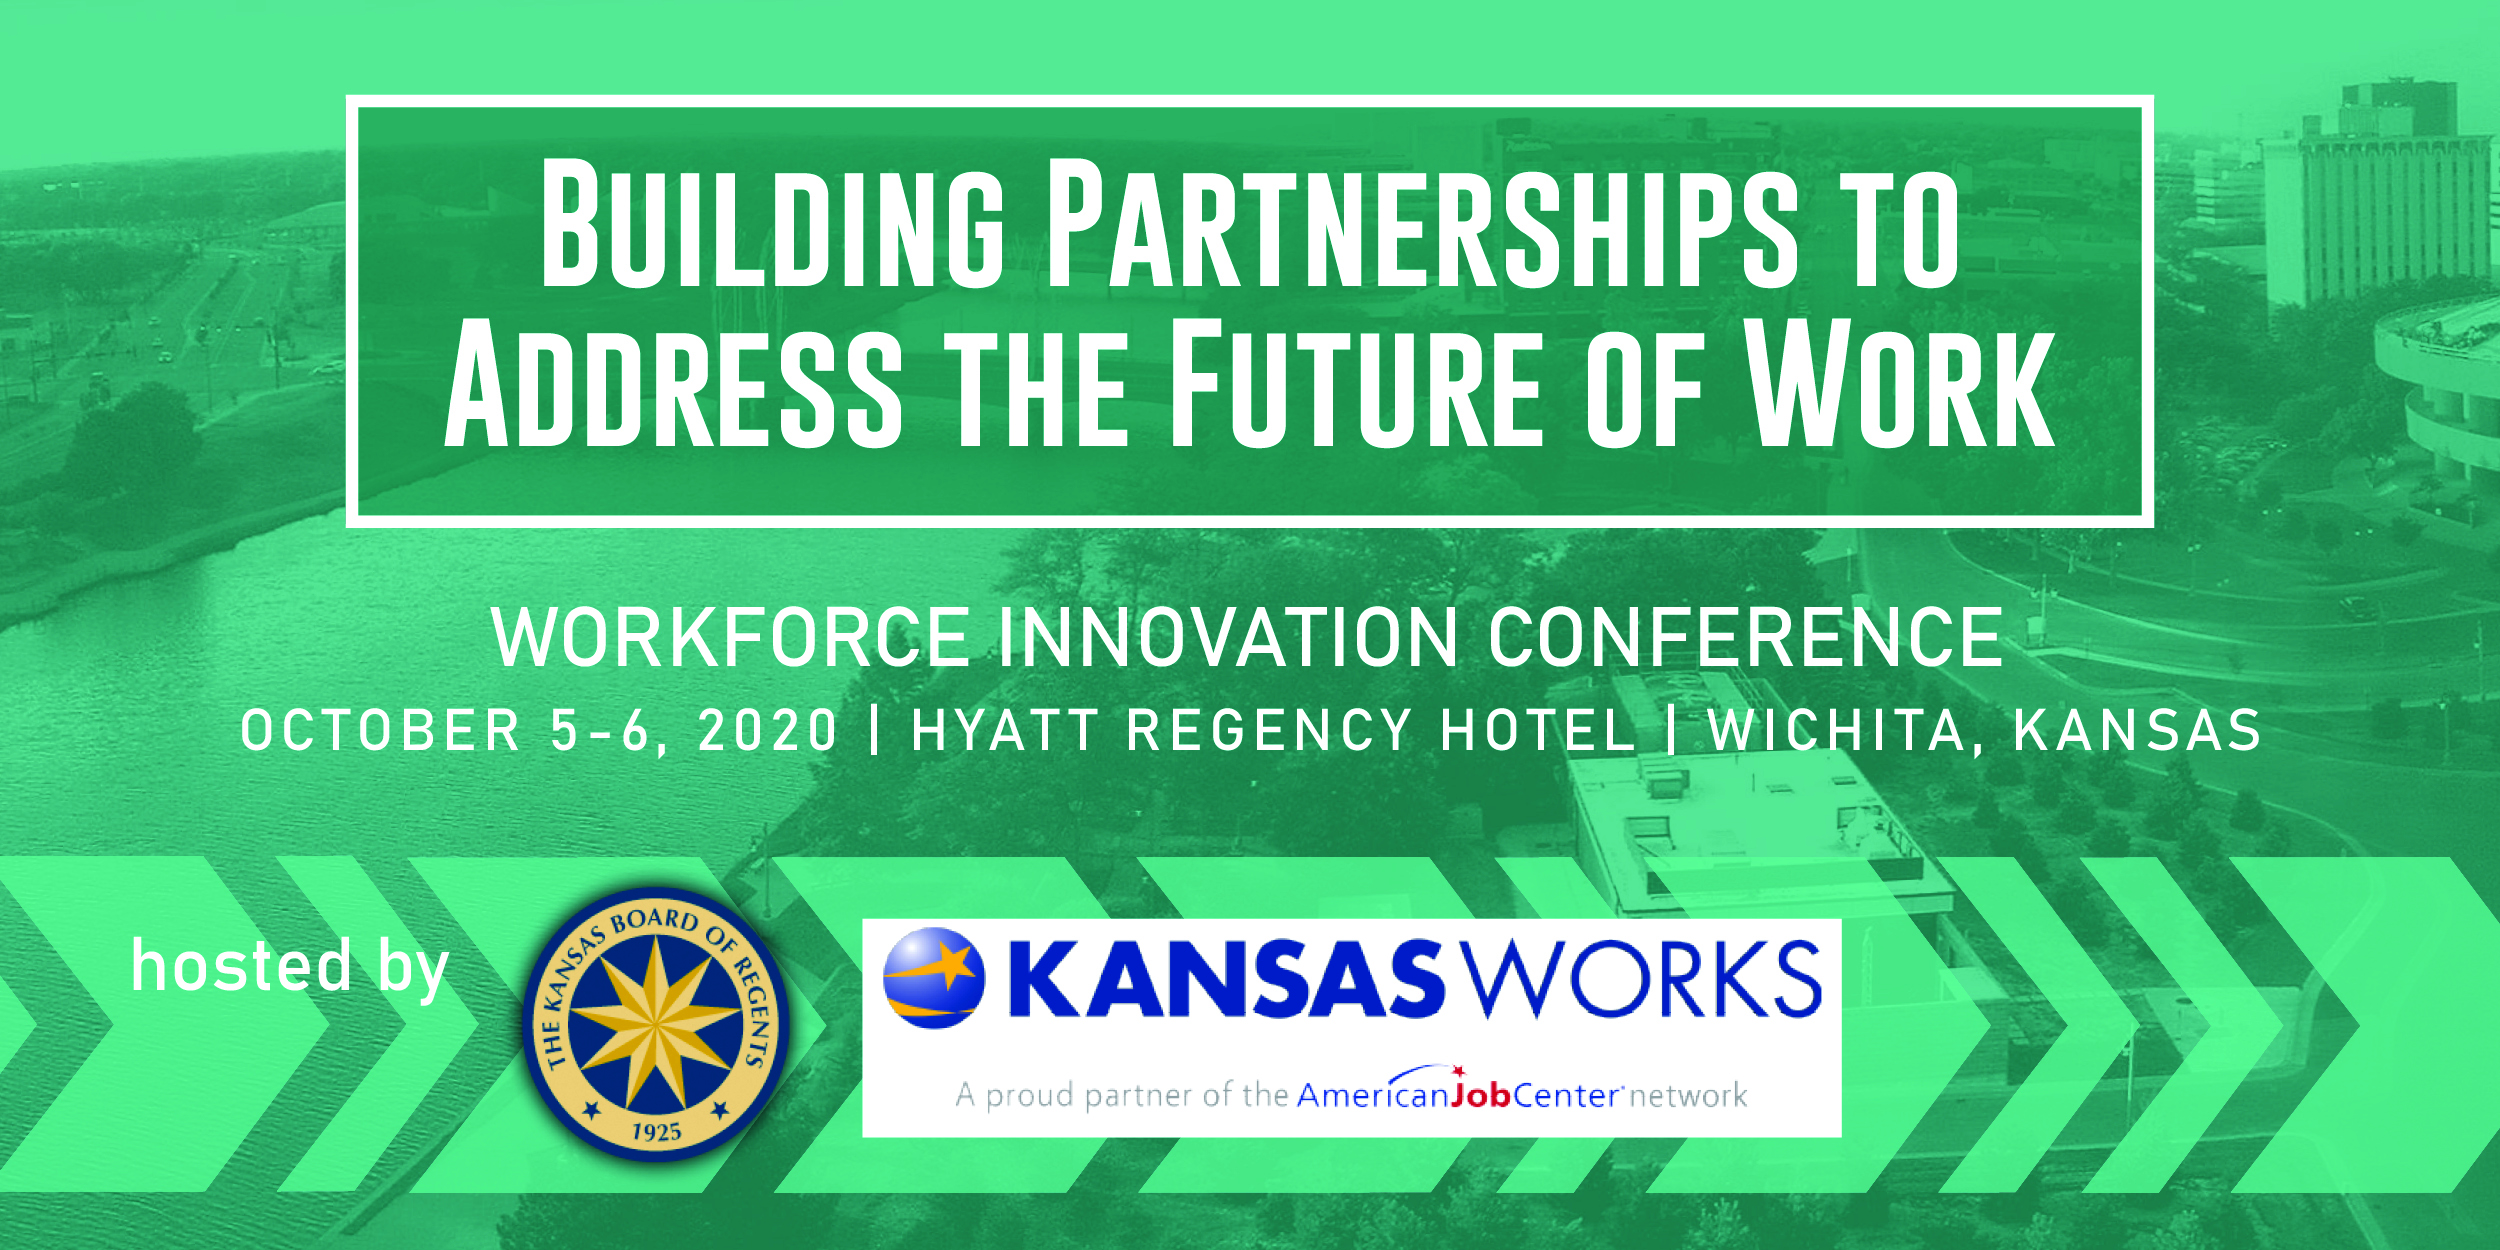 Workforce Conference Banner 2020 with dates and location